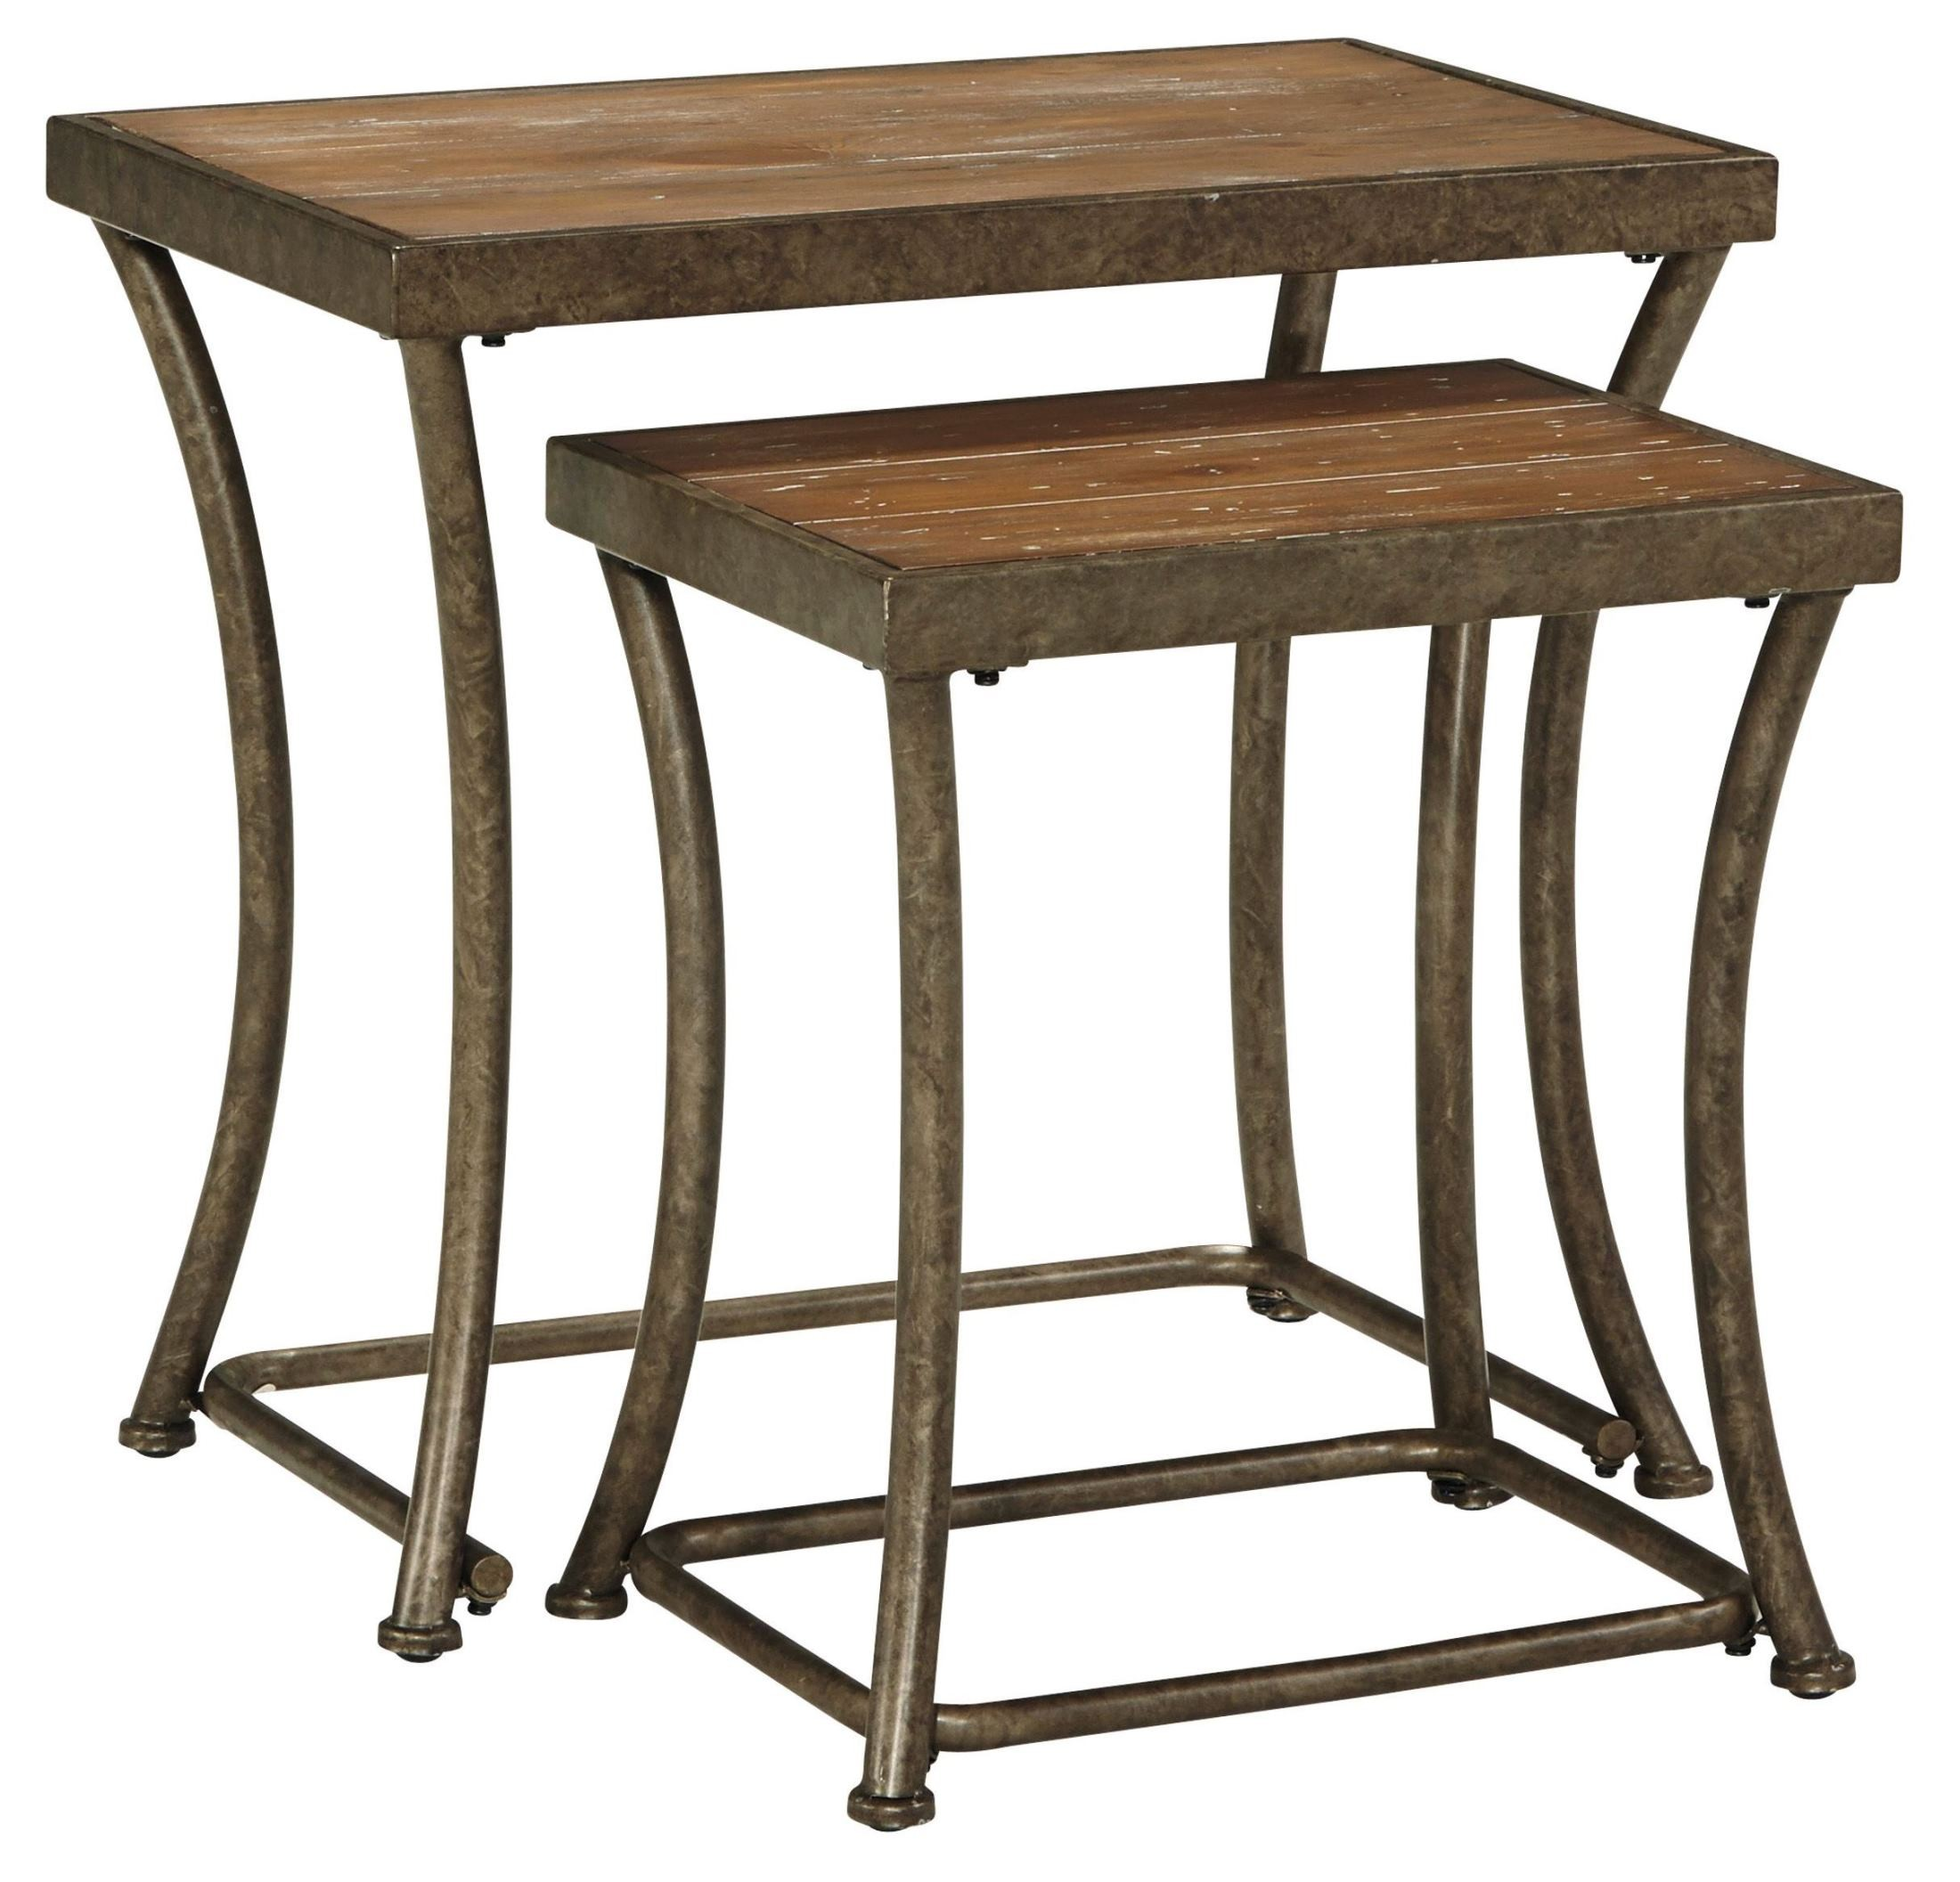 Stacking End Tables Nartina Nesting End Tables Set Of 2 From Ashley T805 16